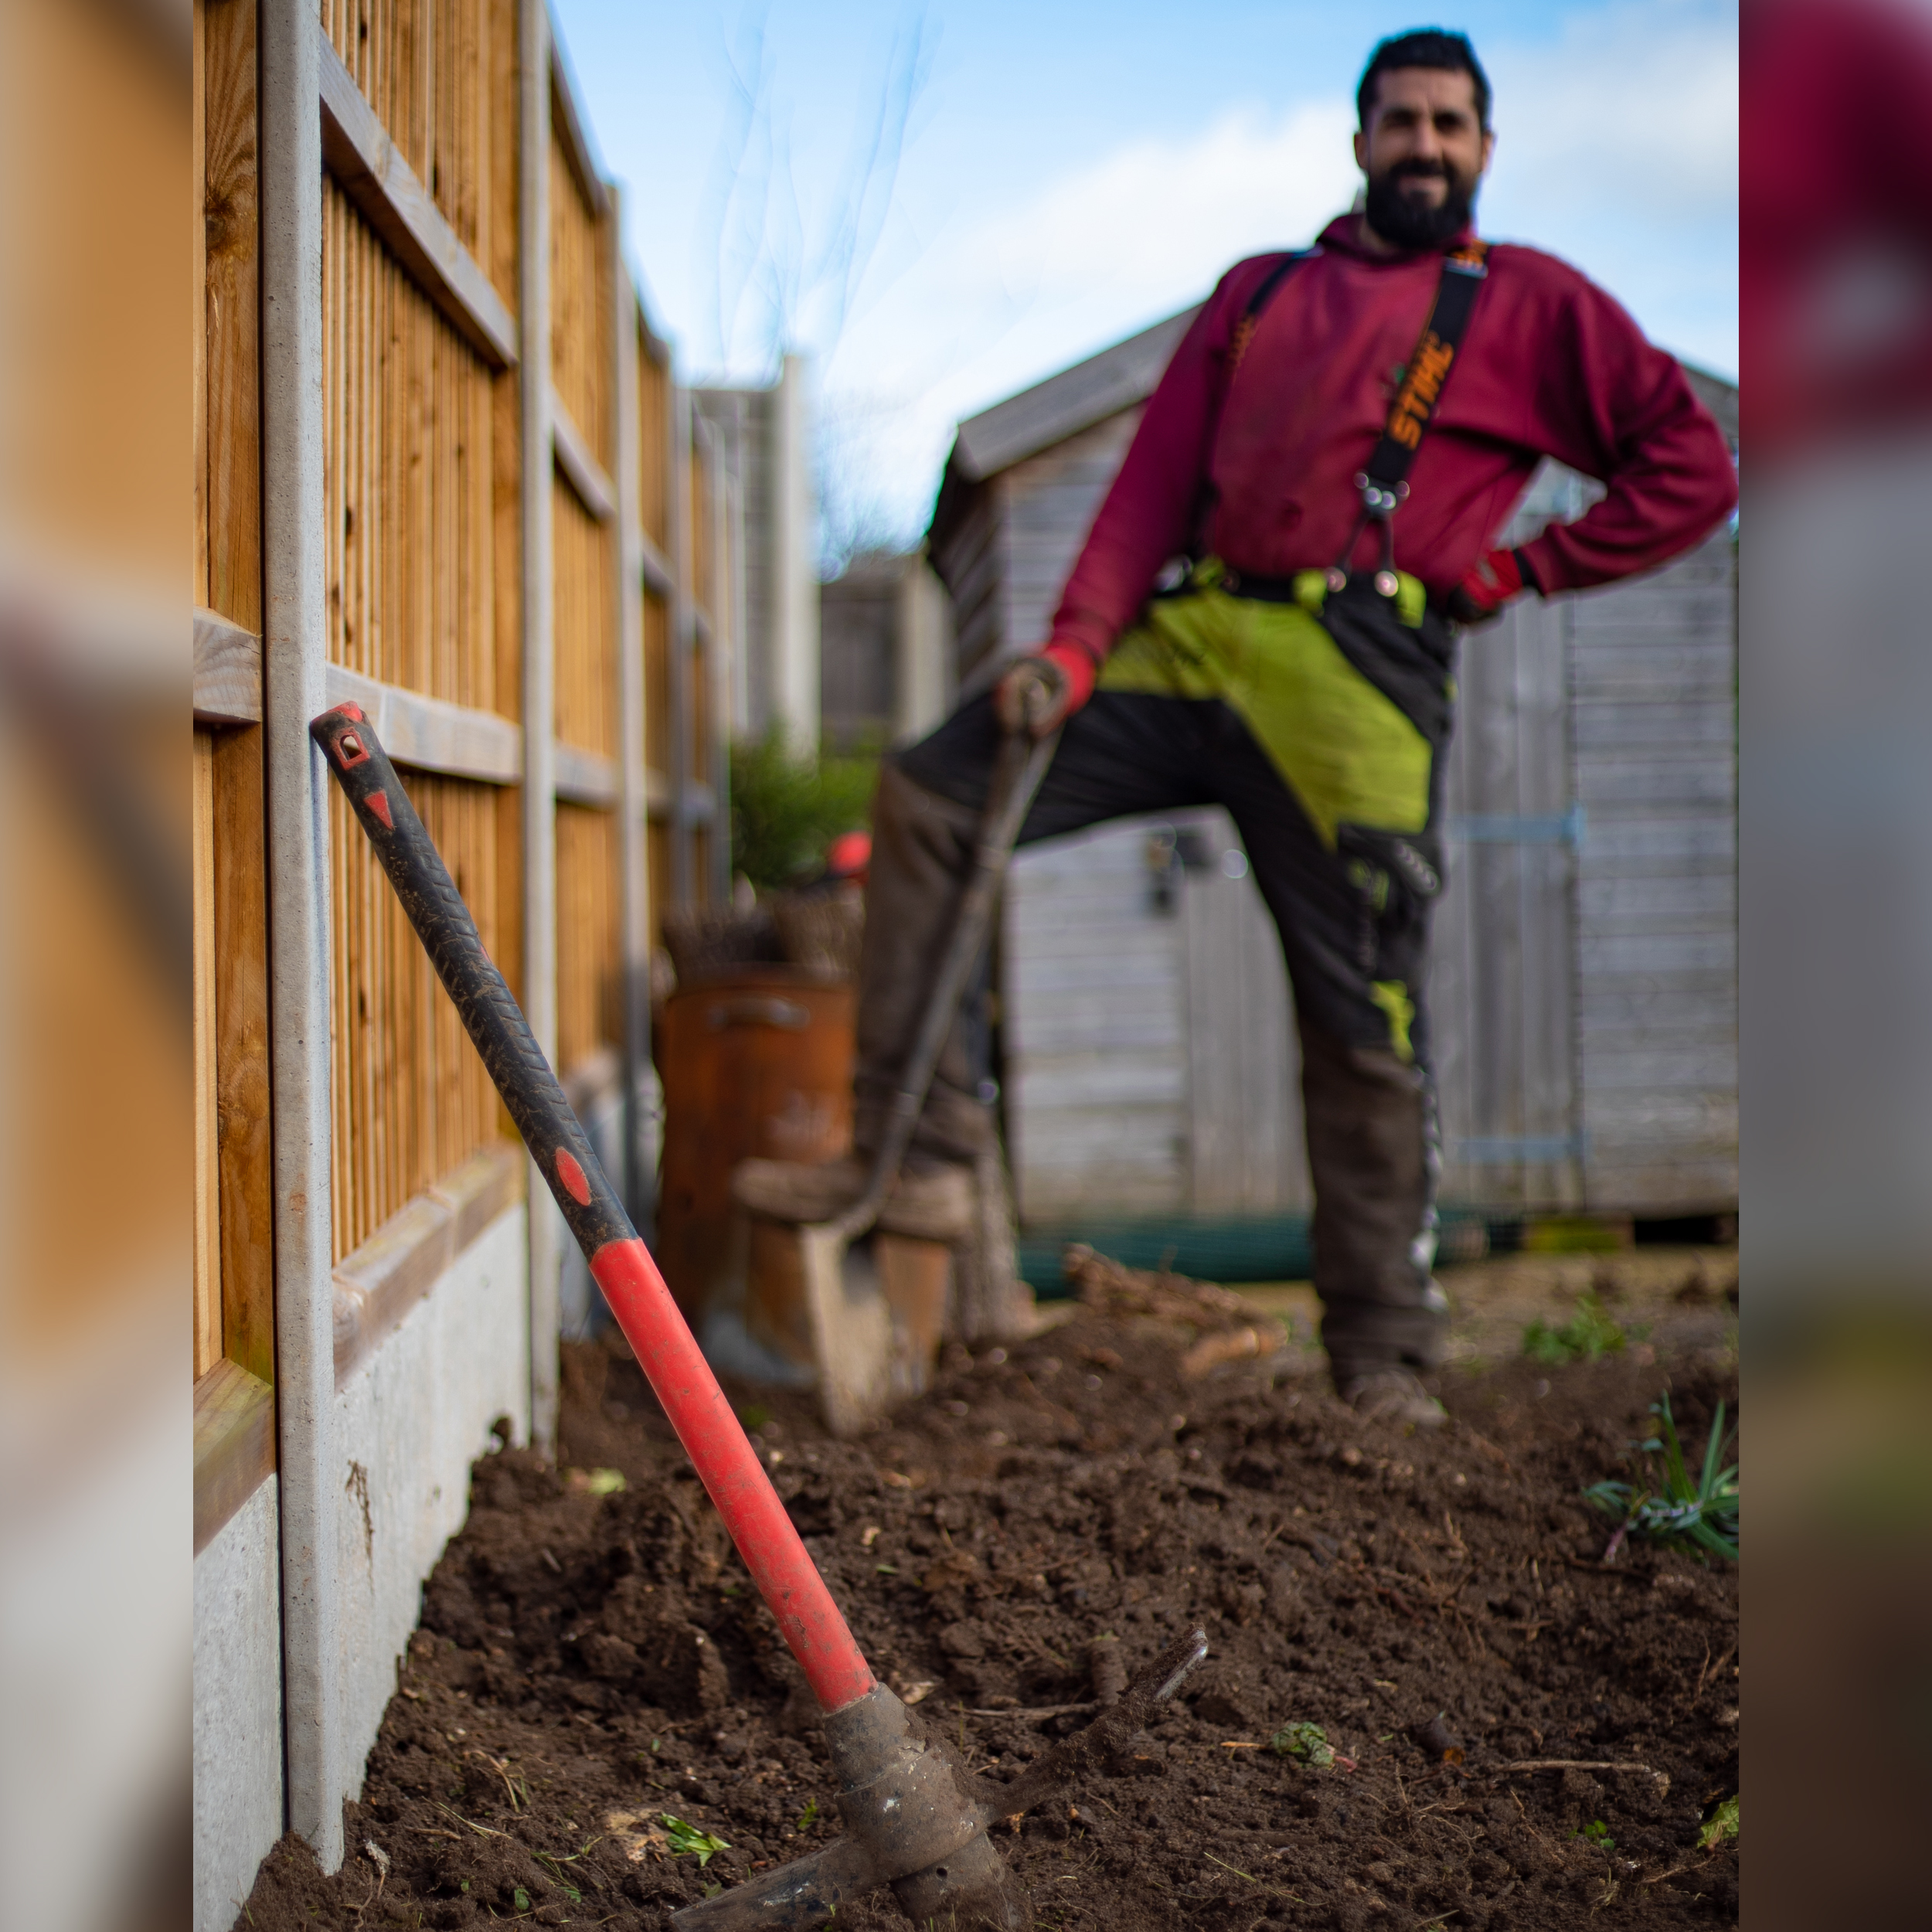 Garden Knight team member Nick posing with a spade on a fencing job